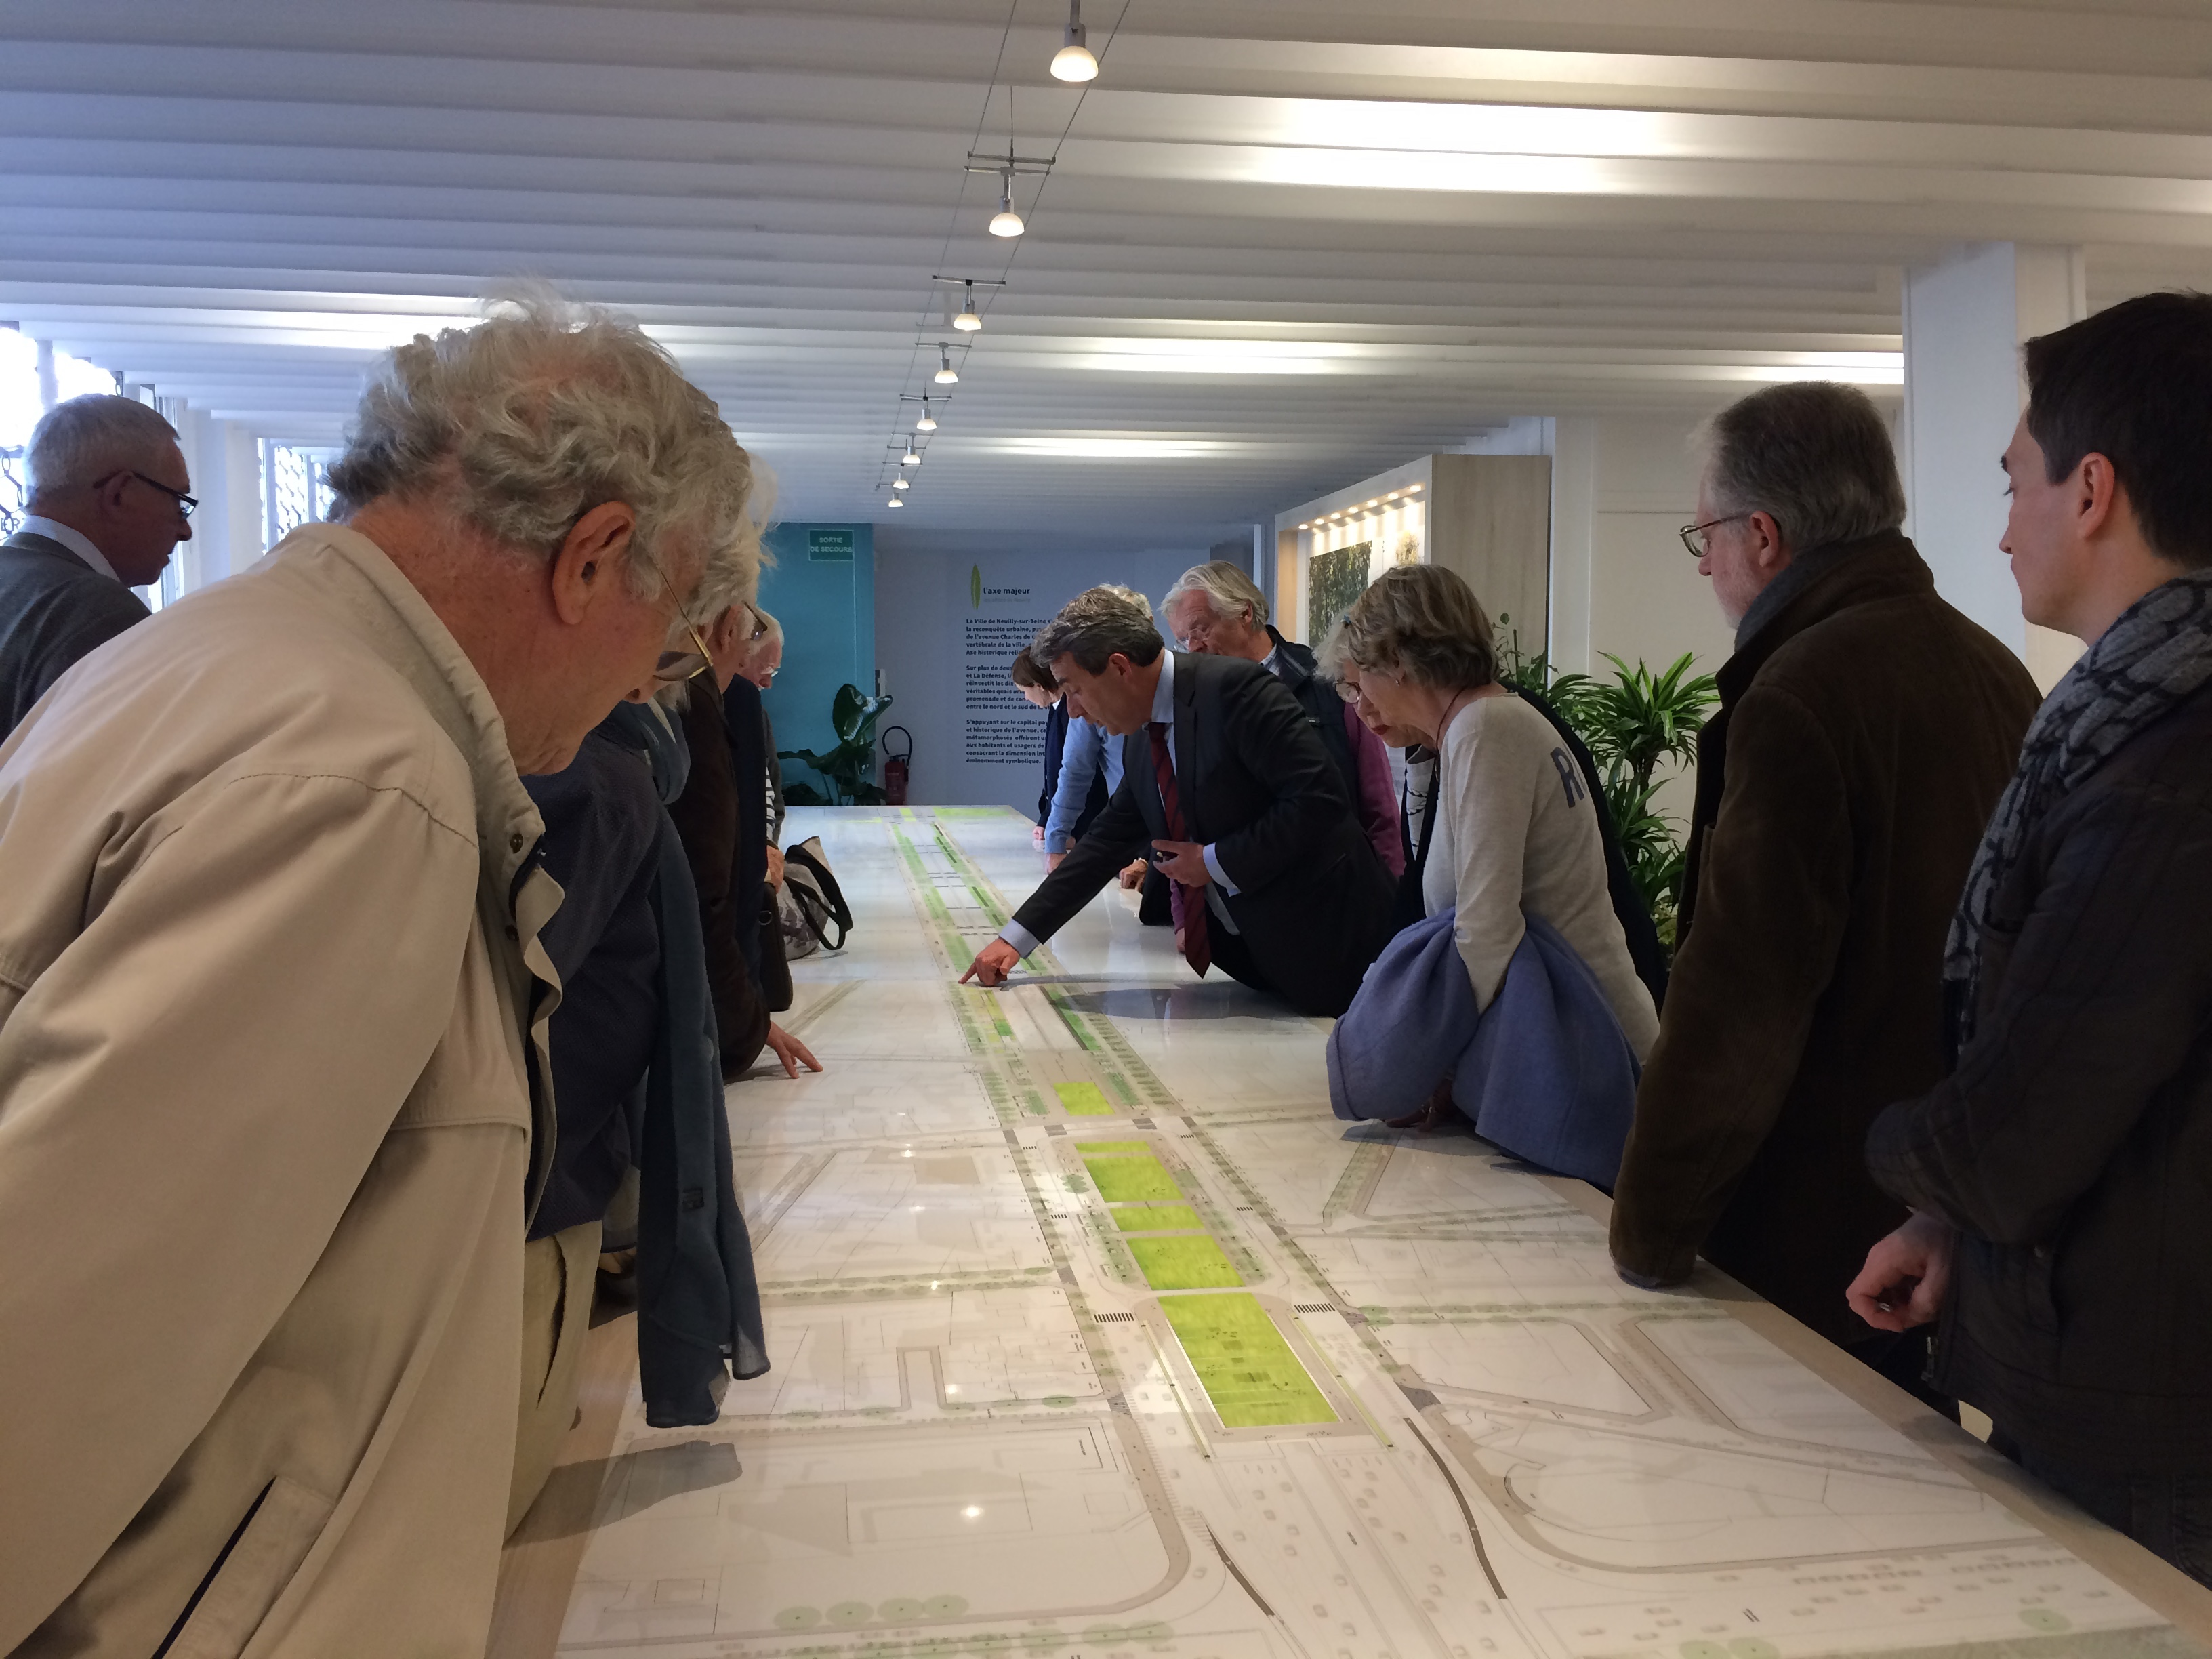 politique-actualite-neuilly-projet-travaux-urbanisme-avenue-charlesdegaulle